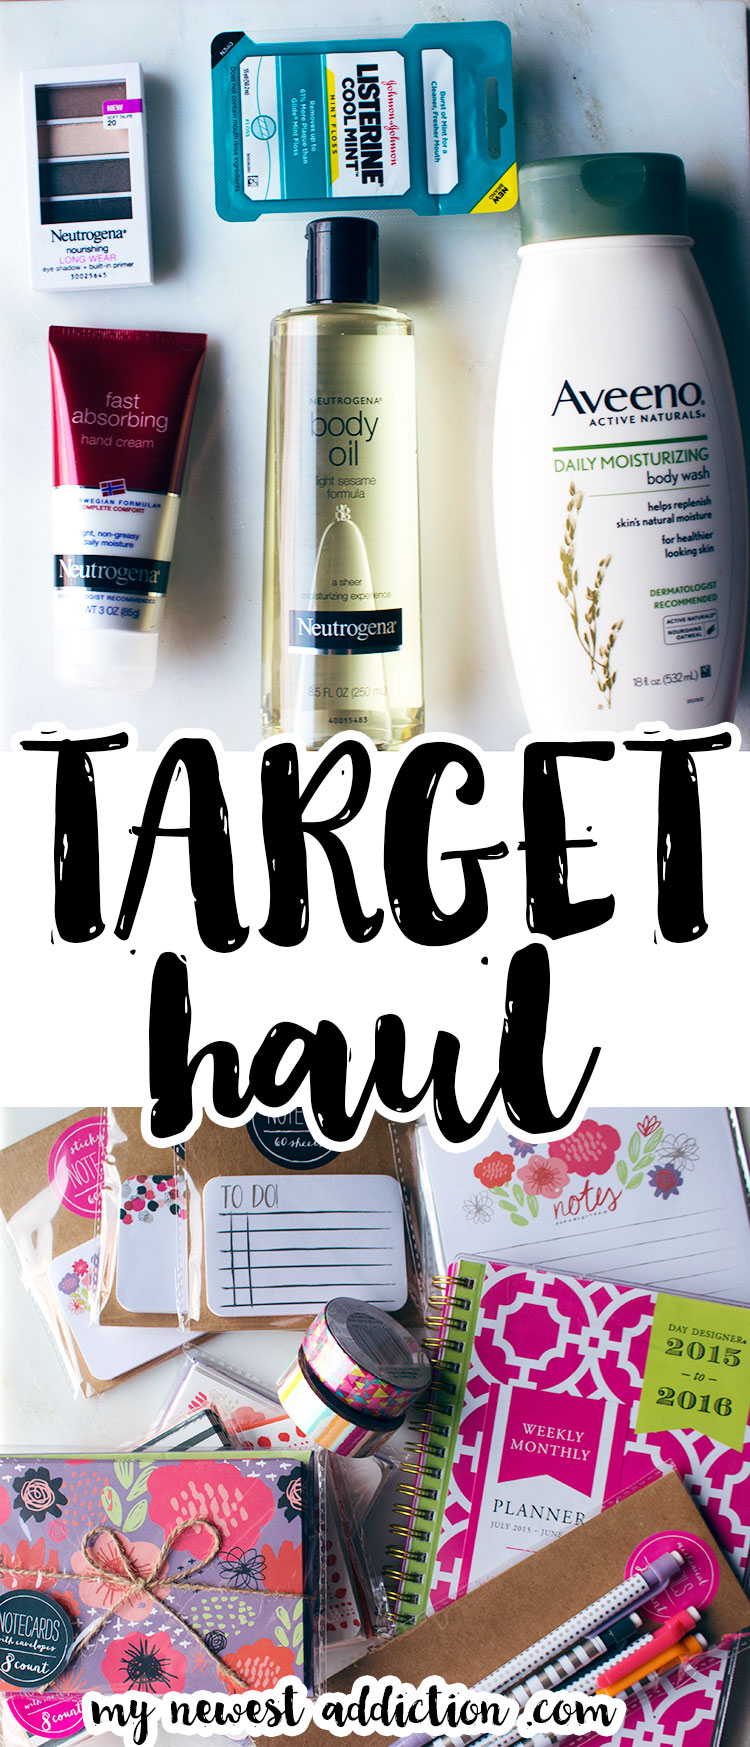 Target Haul | Save with the Cartwheel App